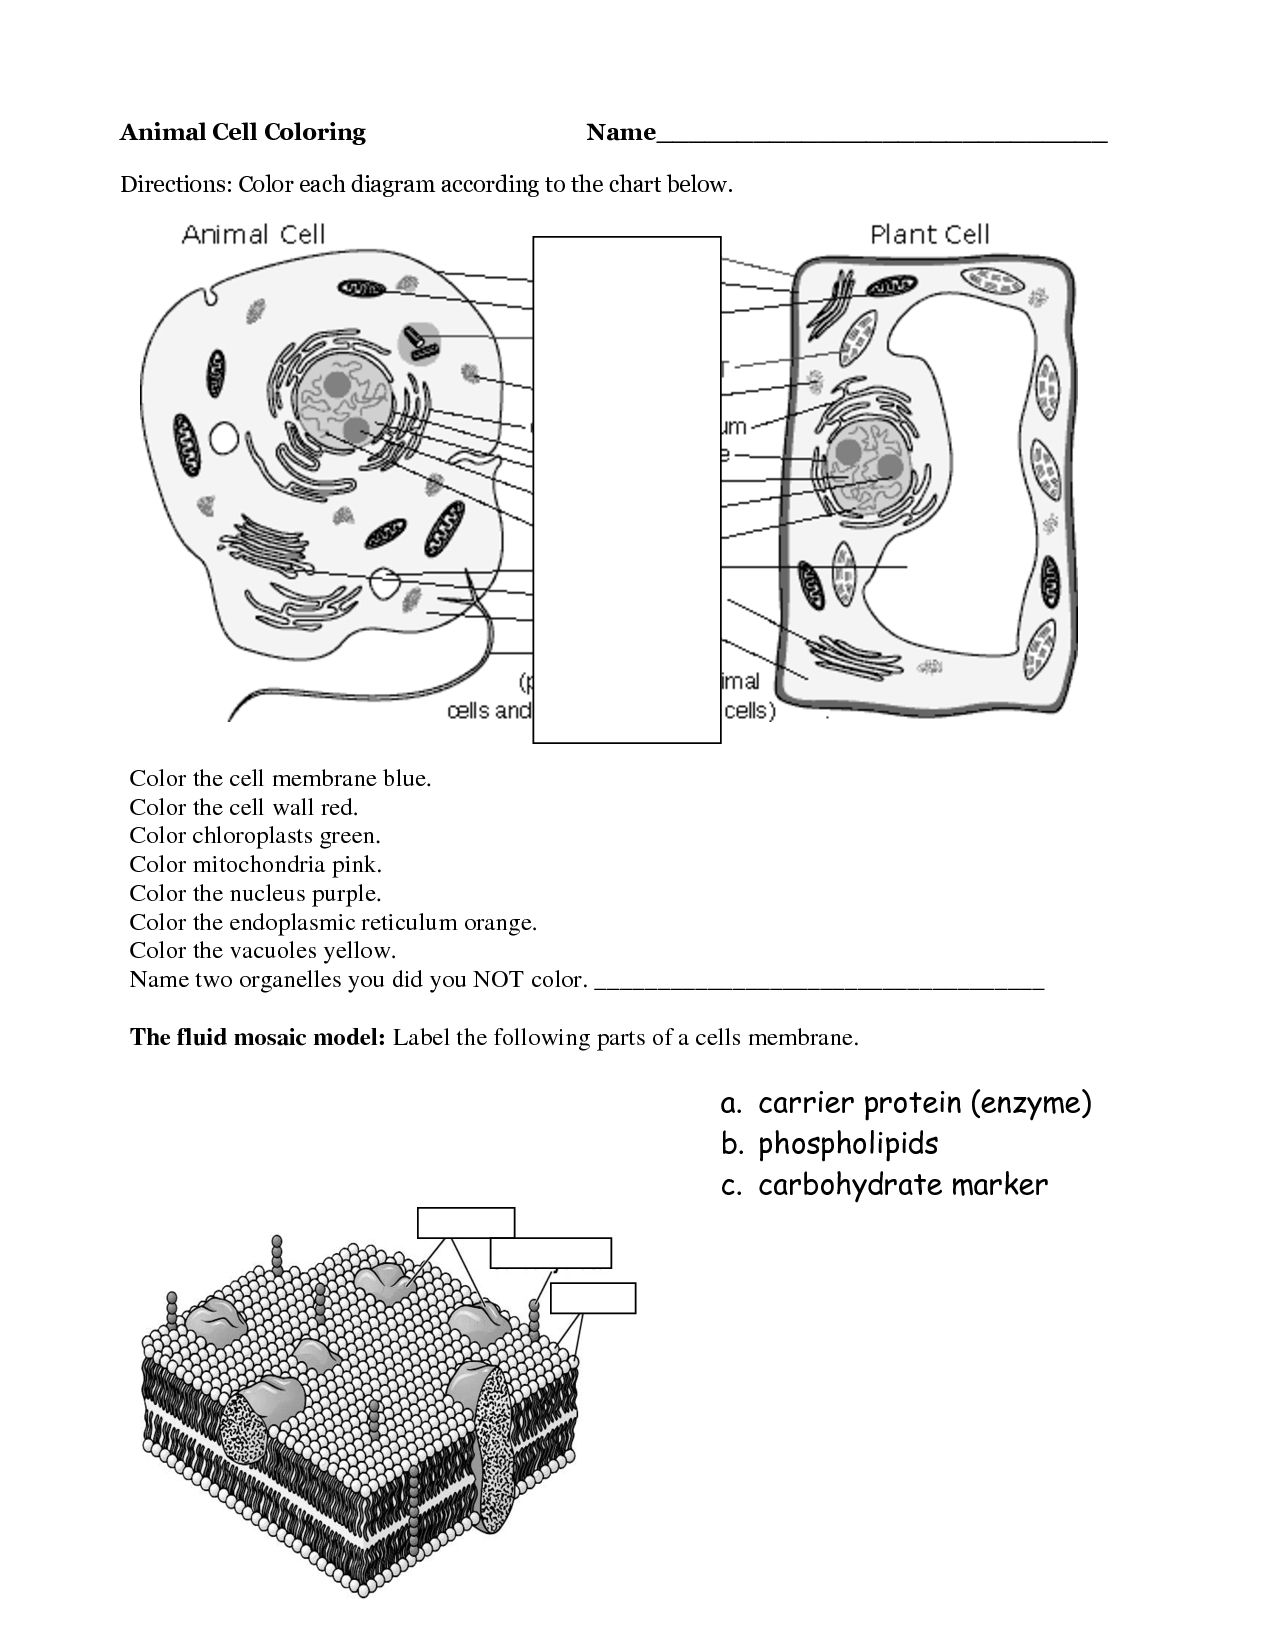 Animal Cell Coloring Page Coloring Home